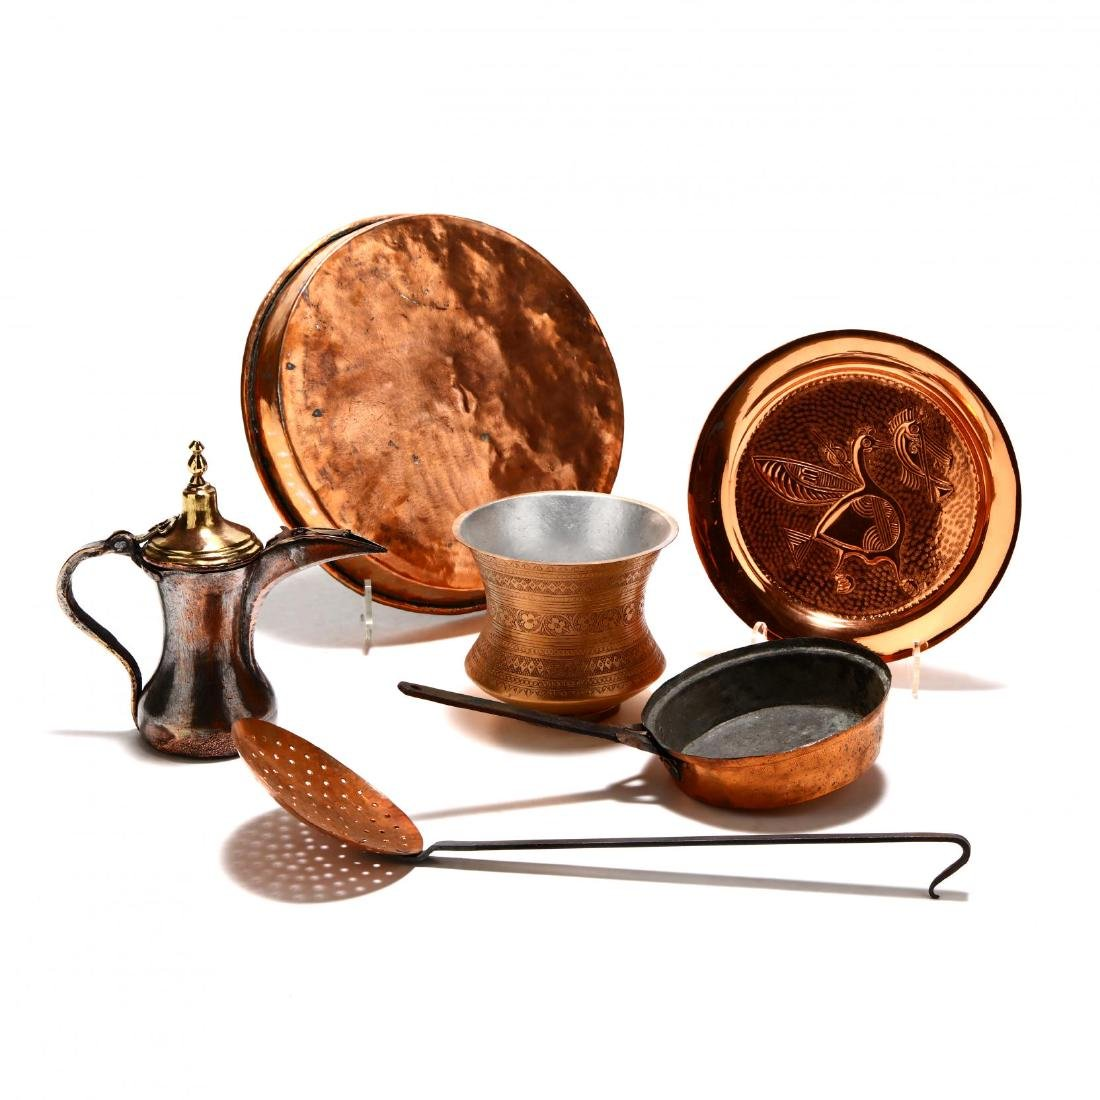 Group of Copper and Metal Kitchenware